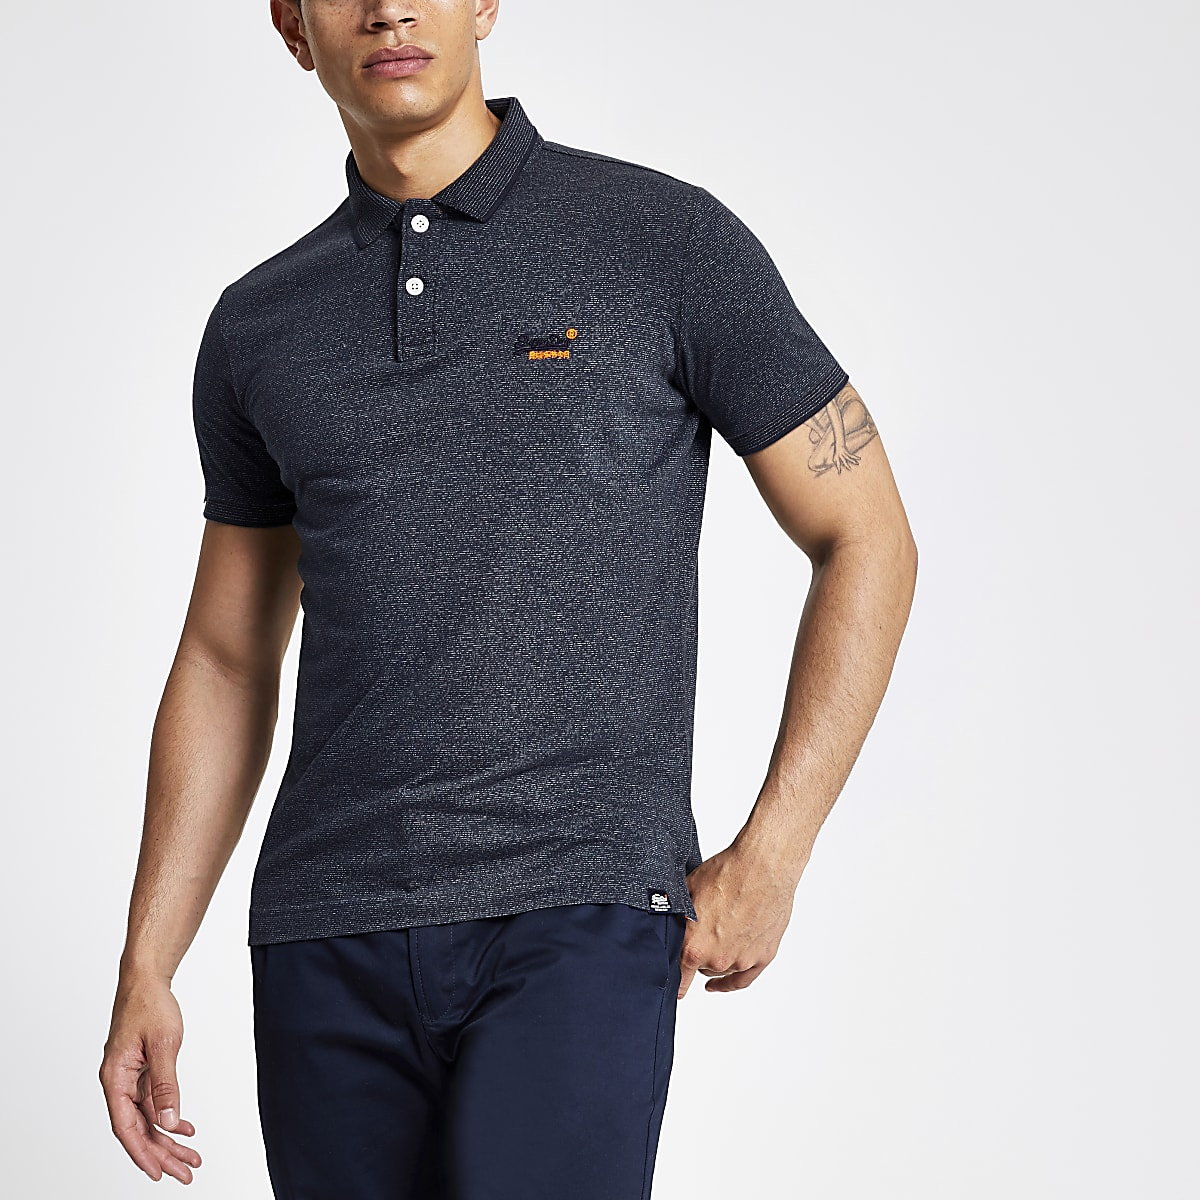 Superdry navy orange logo polo shirt